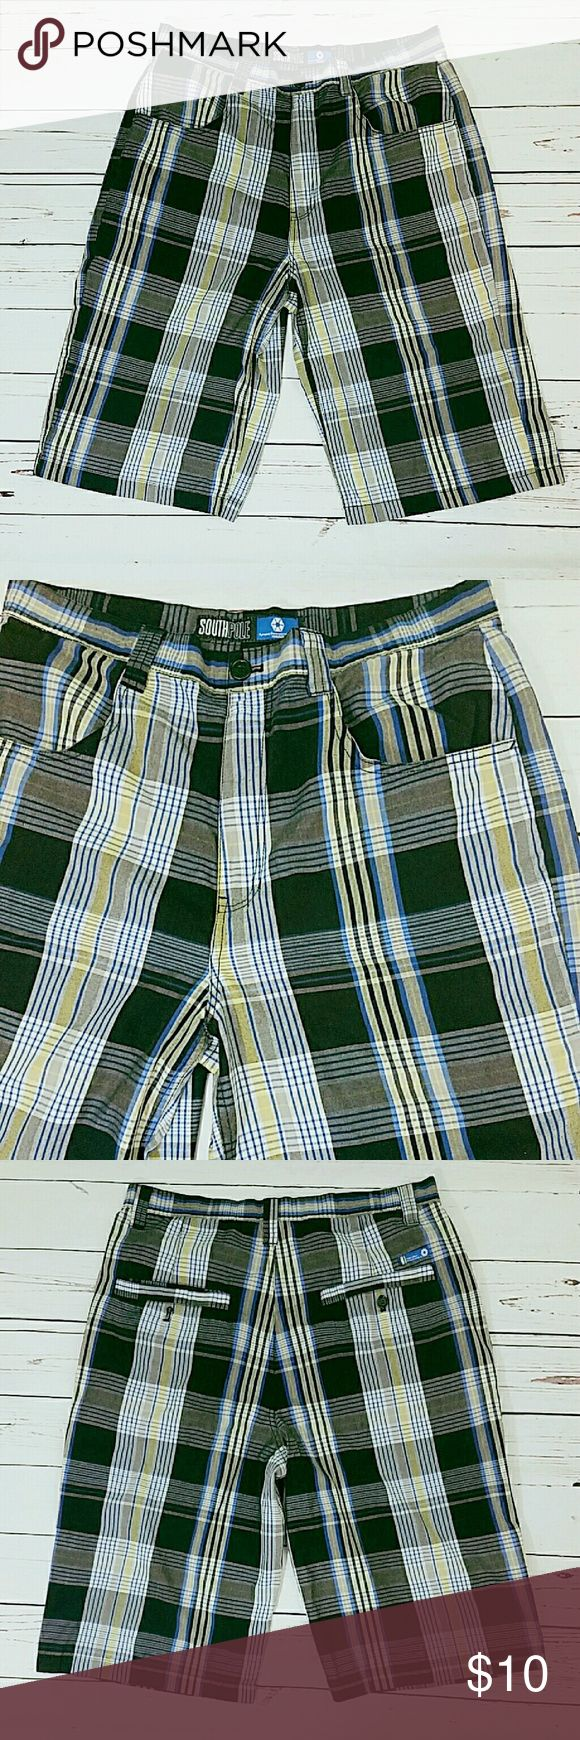 "Men's Plaid Shorts Waist 36"" Inseam 14"" Rise 13"" Black, blue, yellow and white plaid. 4 pockets. Zip front with button close. Machine wash. Very good condition.   201760 South Pole Shorts Flat Front"